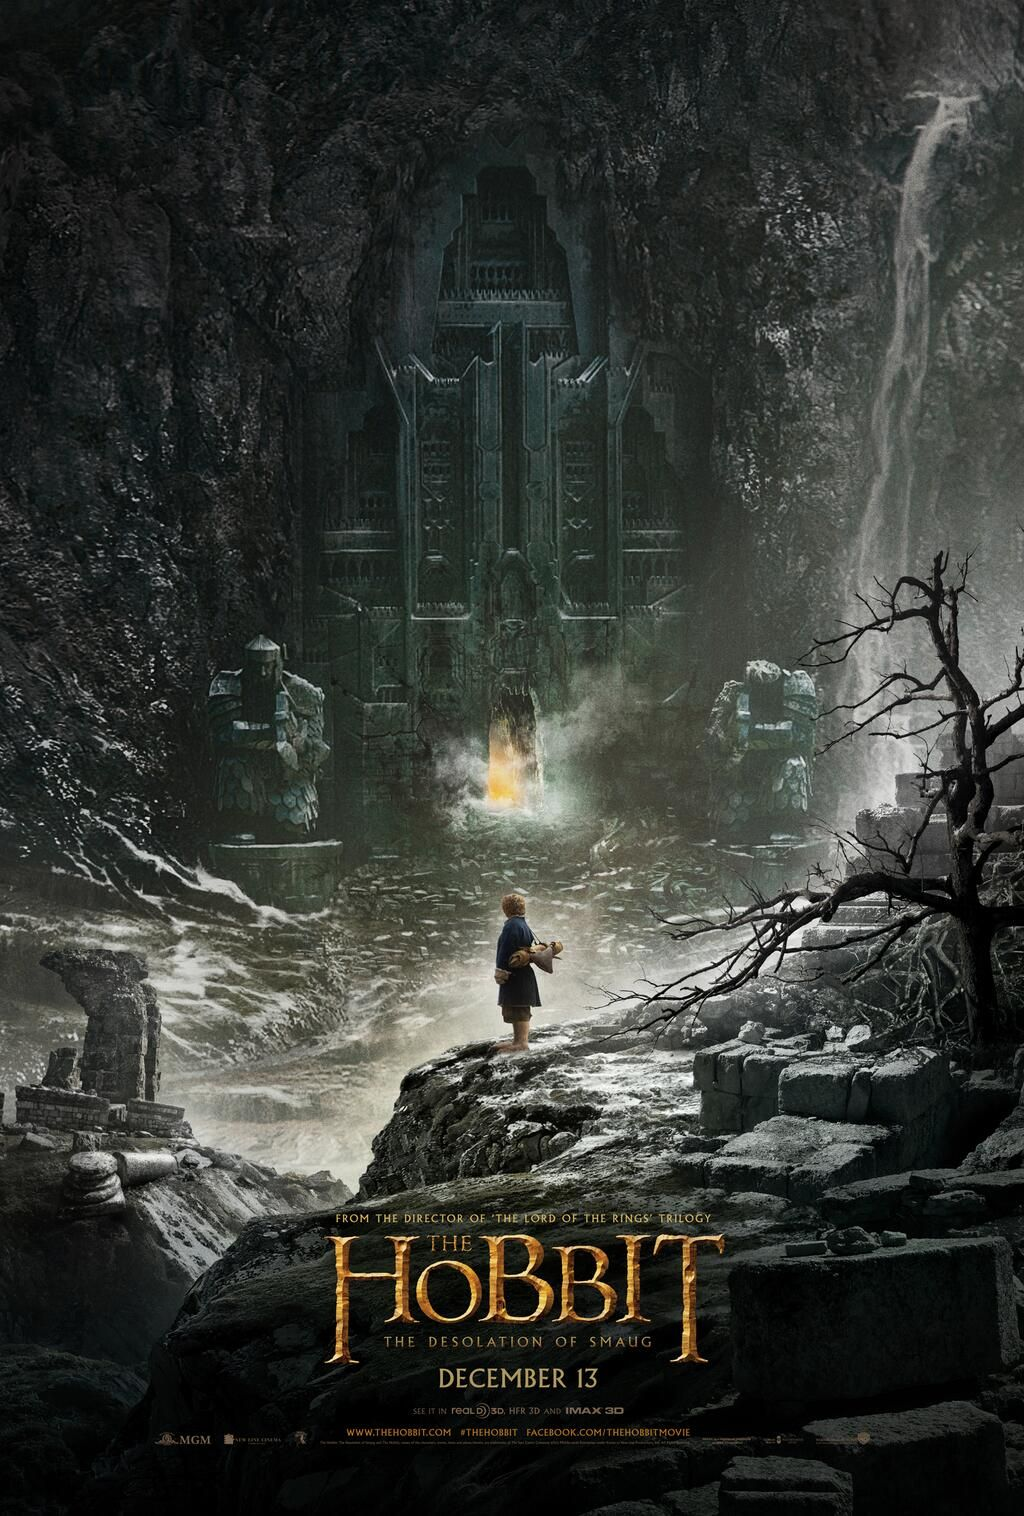 hobbit desolation smaug poster The Hobbit: The Desolation Of Smaug Gallery